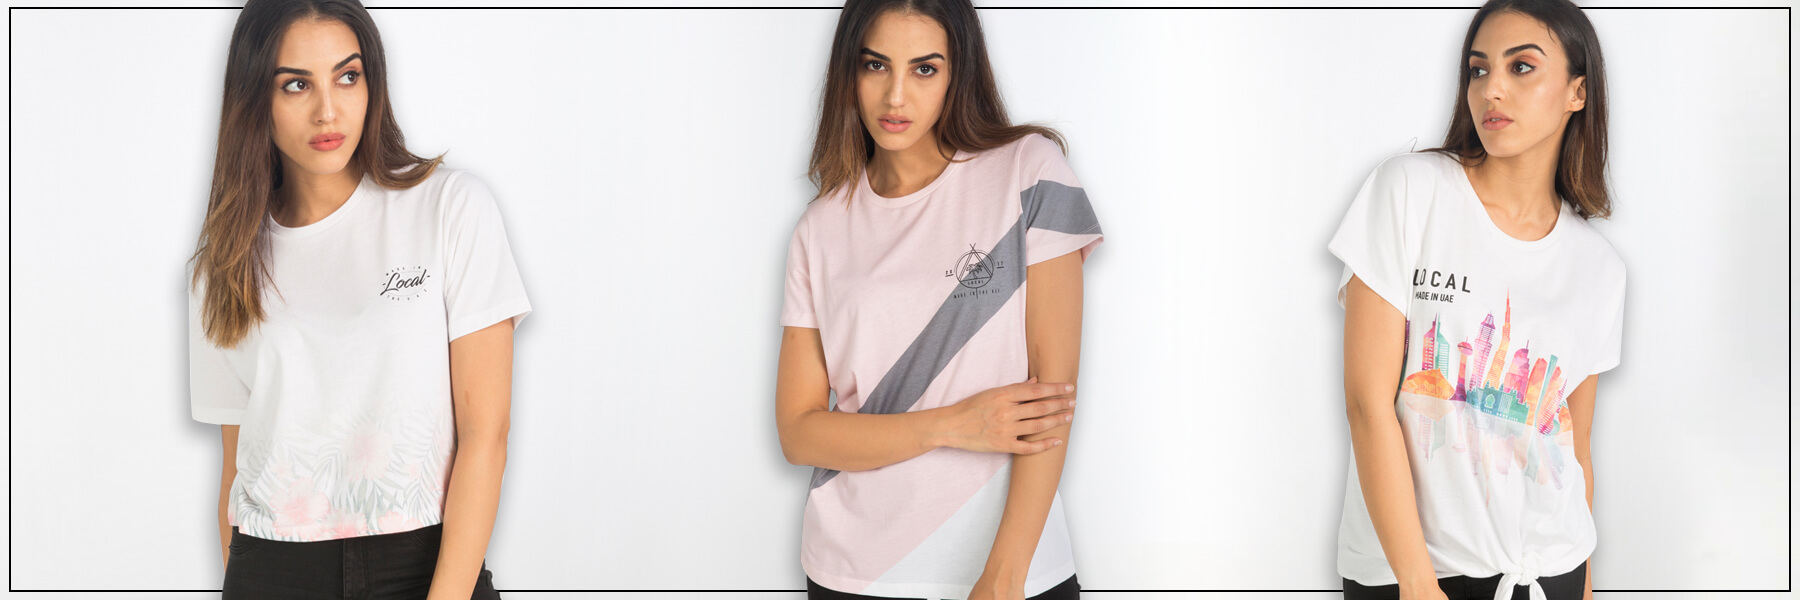 wholesale-women-tshirts-clothing-and-garments-supplier-in-dubai-uae-and-middle-east